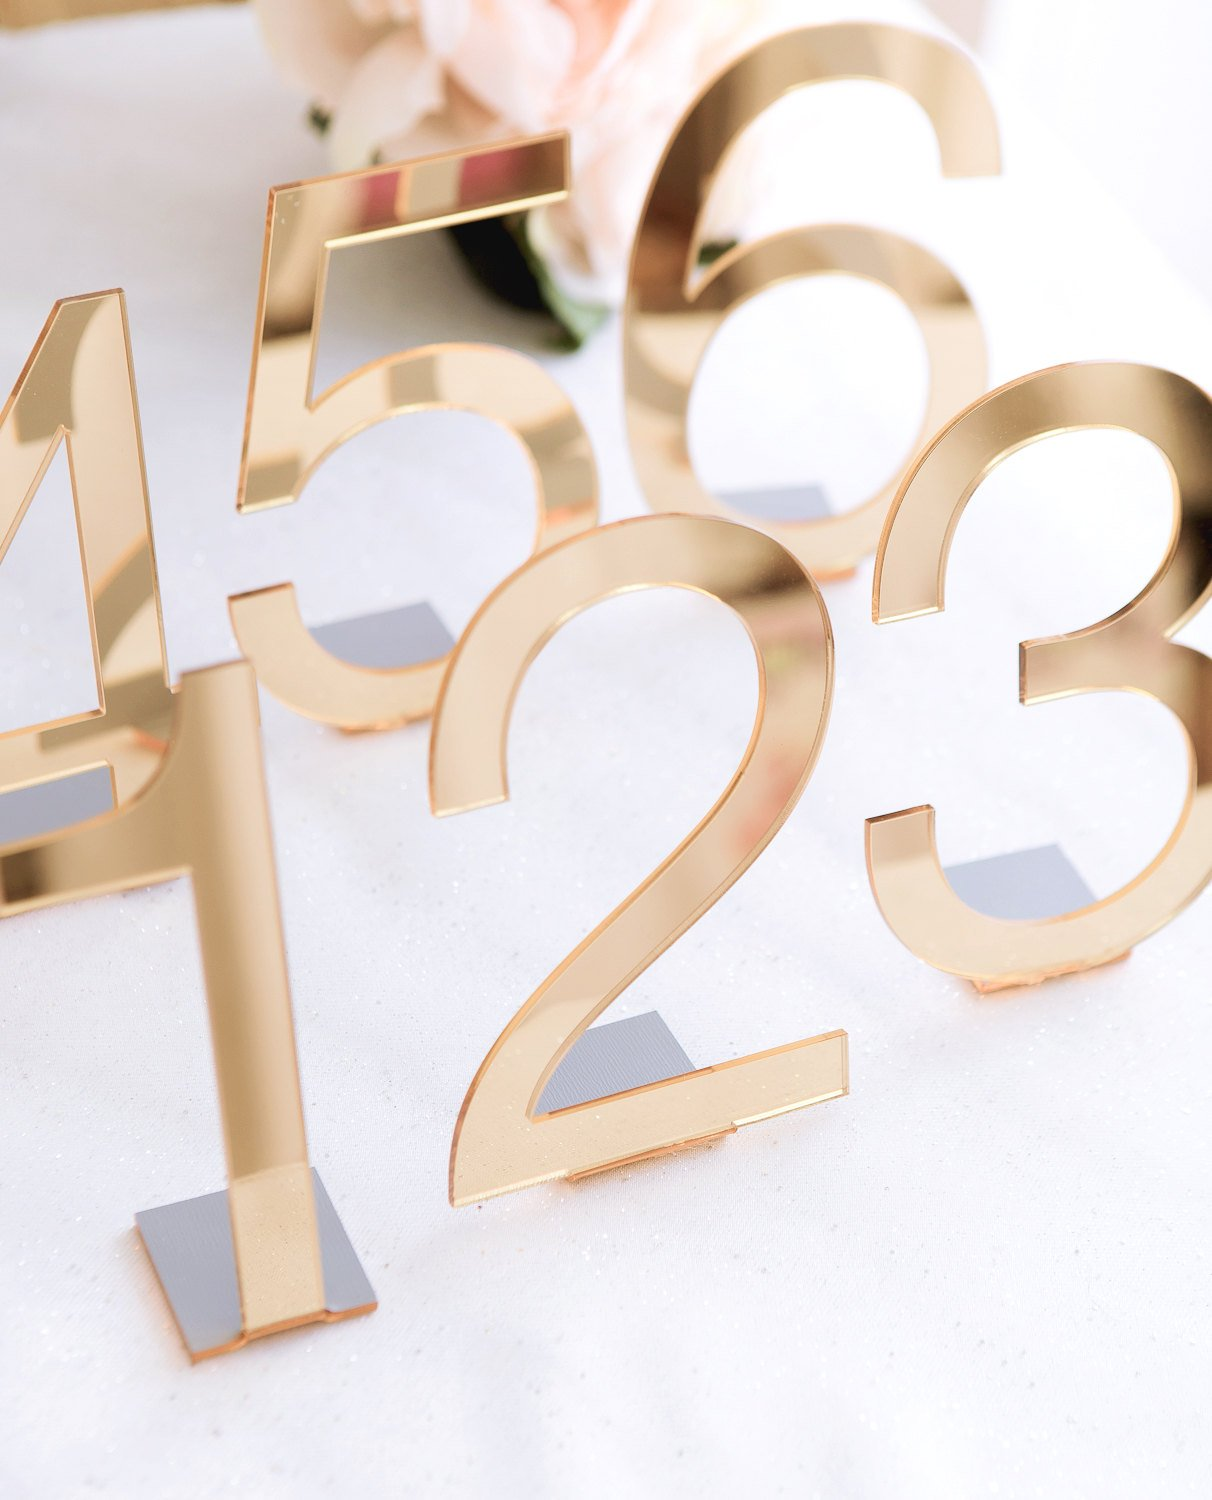 Acrylic Mirror Table Numbers Wedding Table Numbers Restaurant Table Numbers Buy Numeros De Mesa De Espejo Acrilico Numeros De Mesa De Acrilico De Boda Numeros De Mesa De Restaurante Acrilico Numeros De Mesa Product On